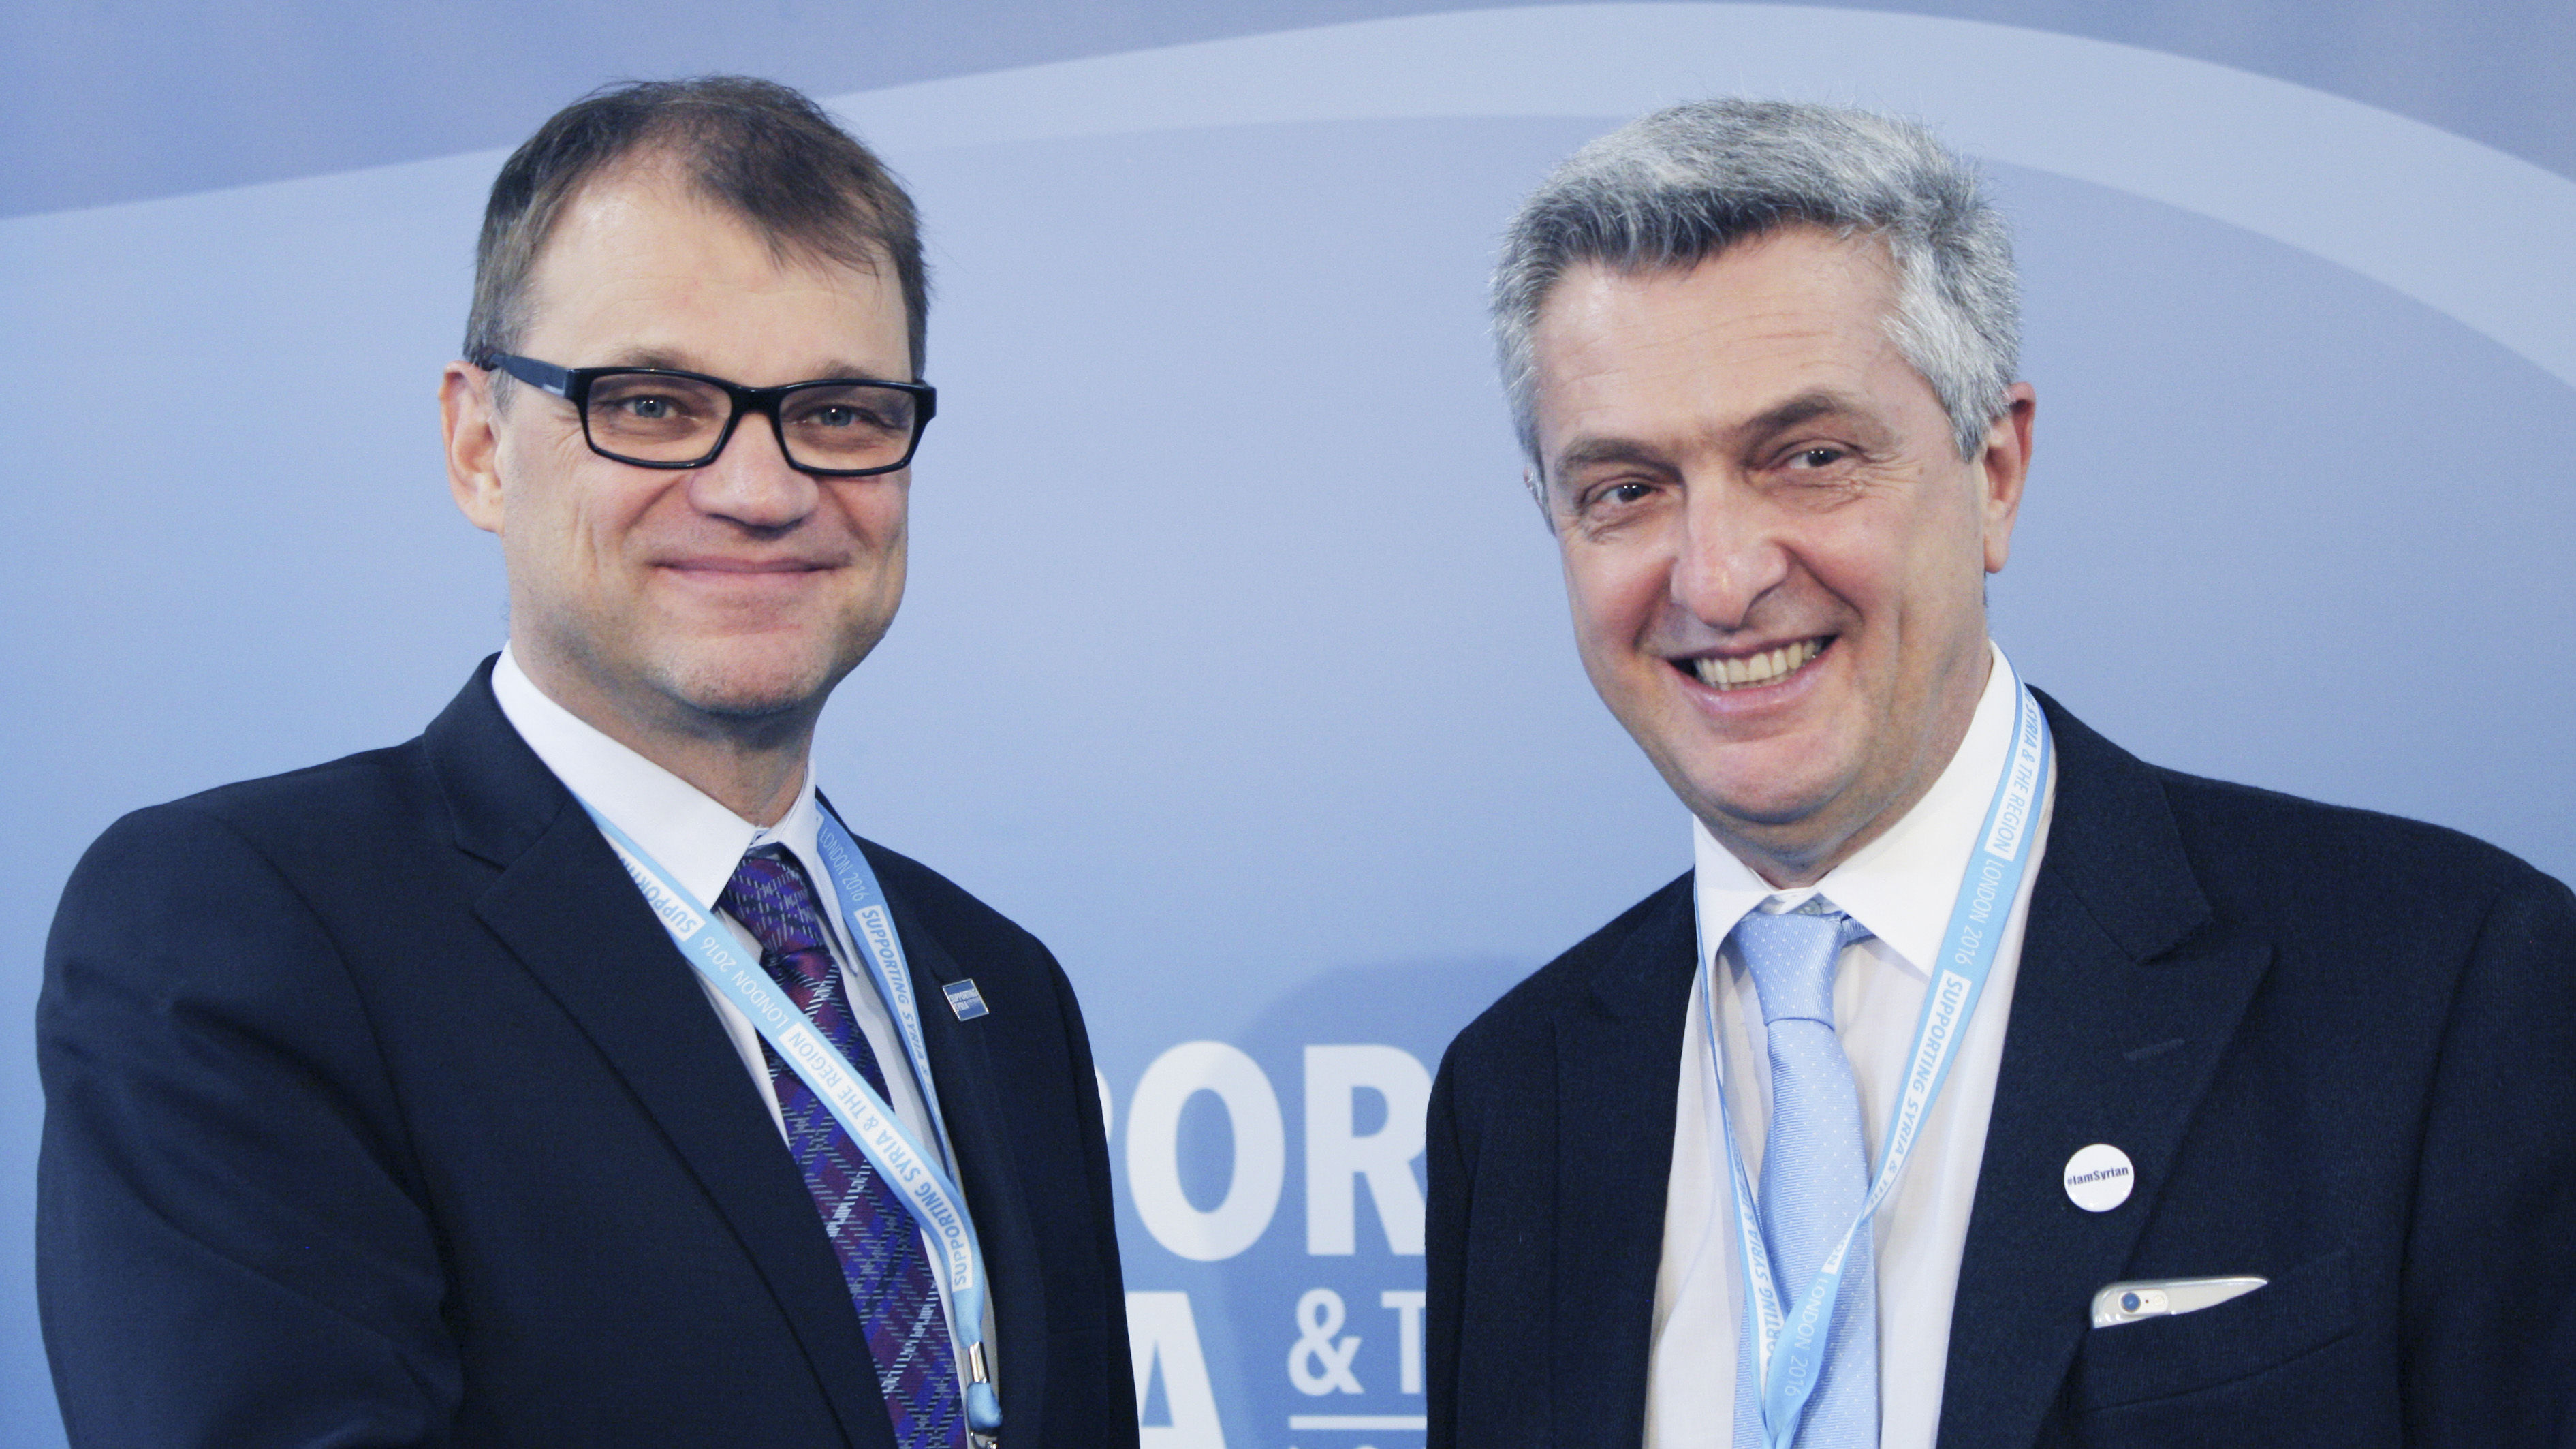 Prime Minister Sipilä participated in the Supporting Syria and the Region Conference in London